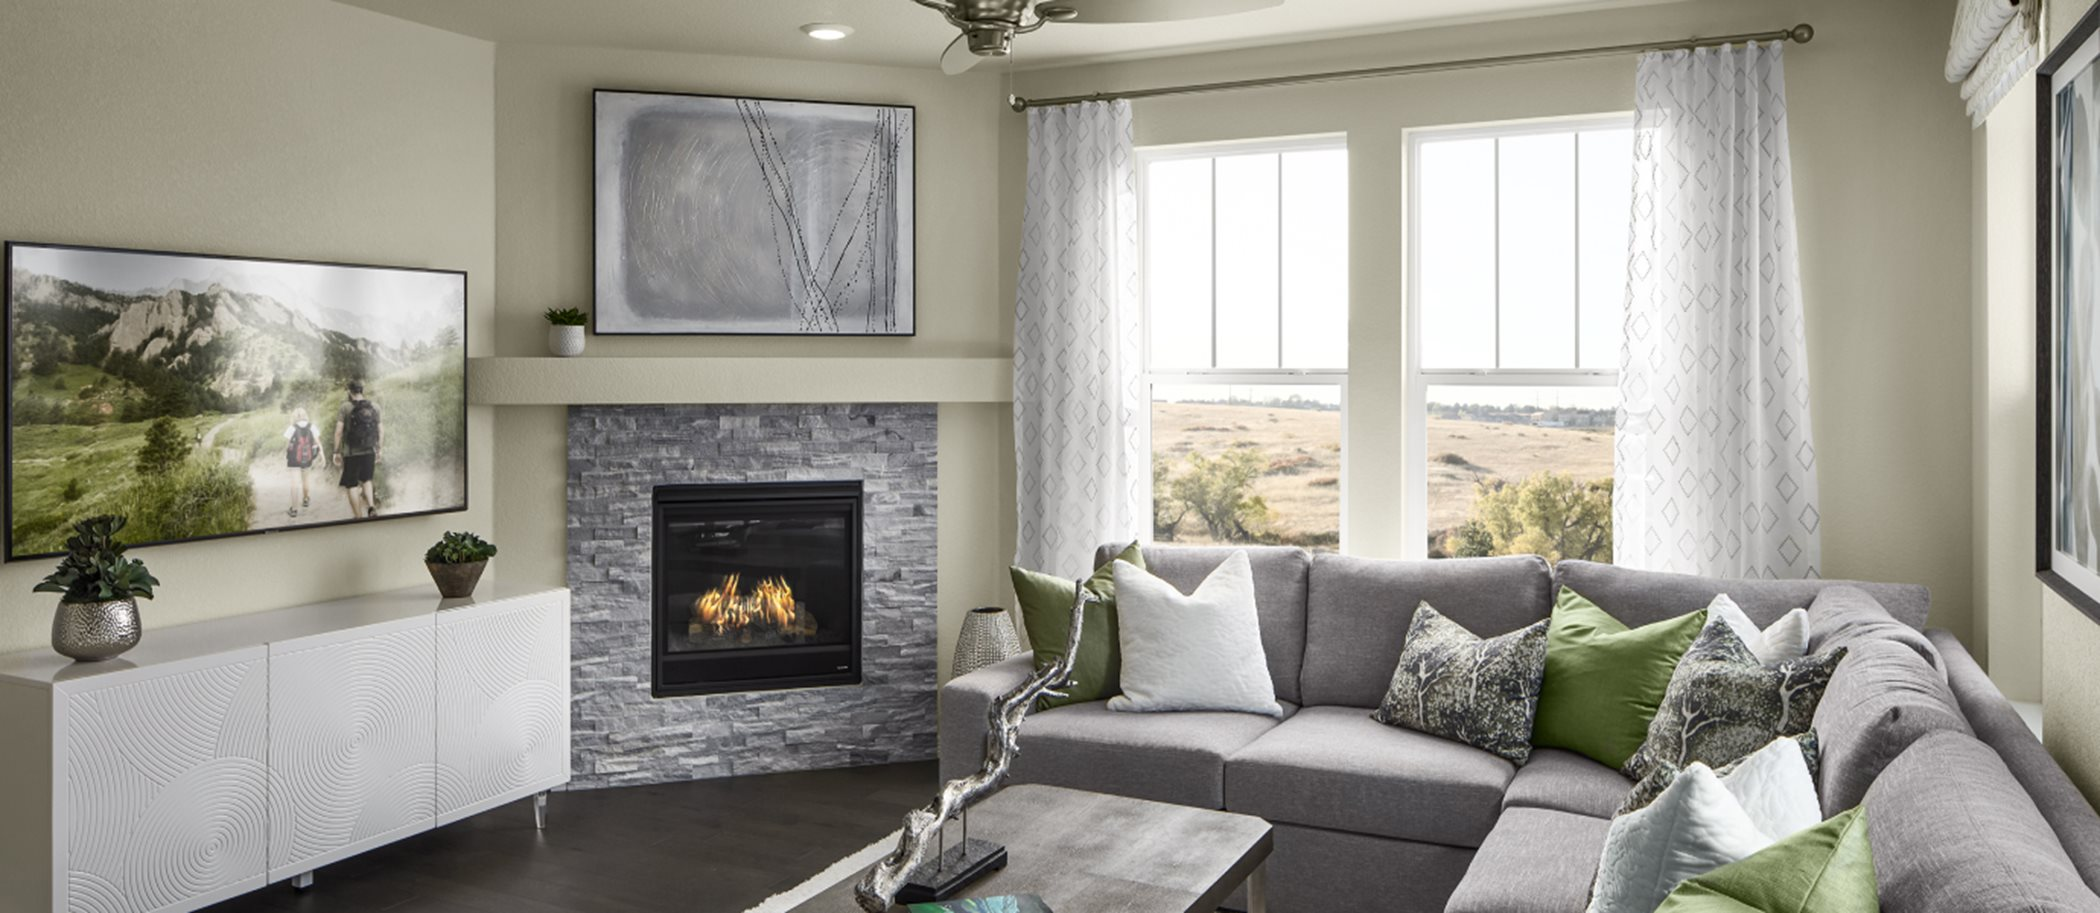 Palisade Park West The Monarch Collection Bristlecone Living Room